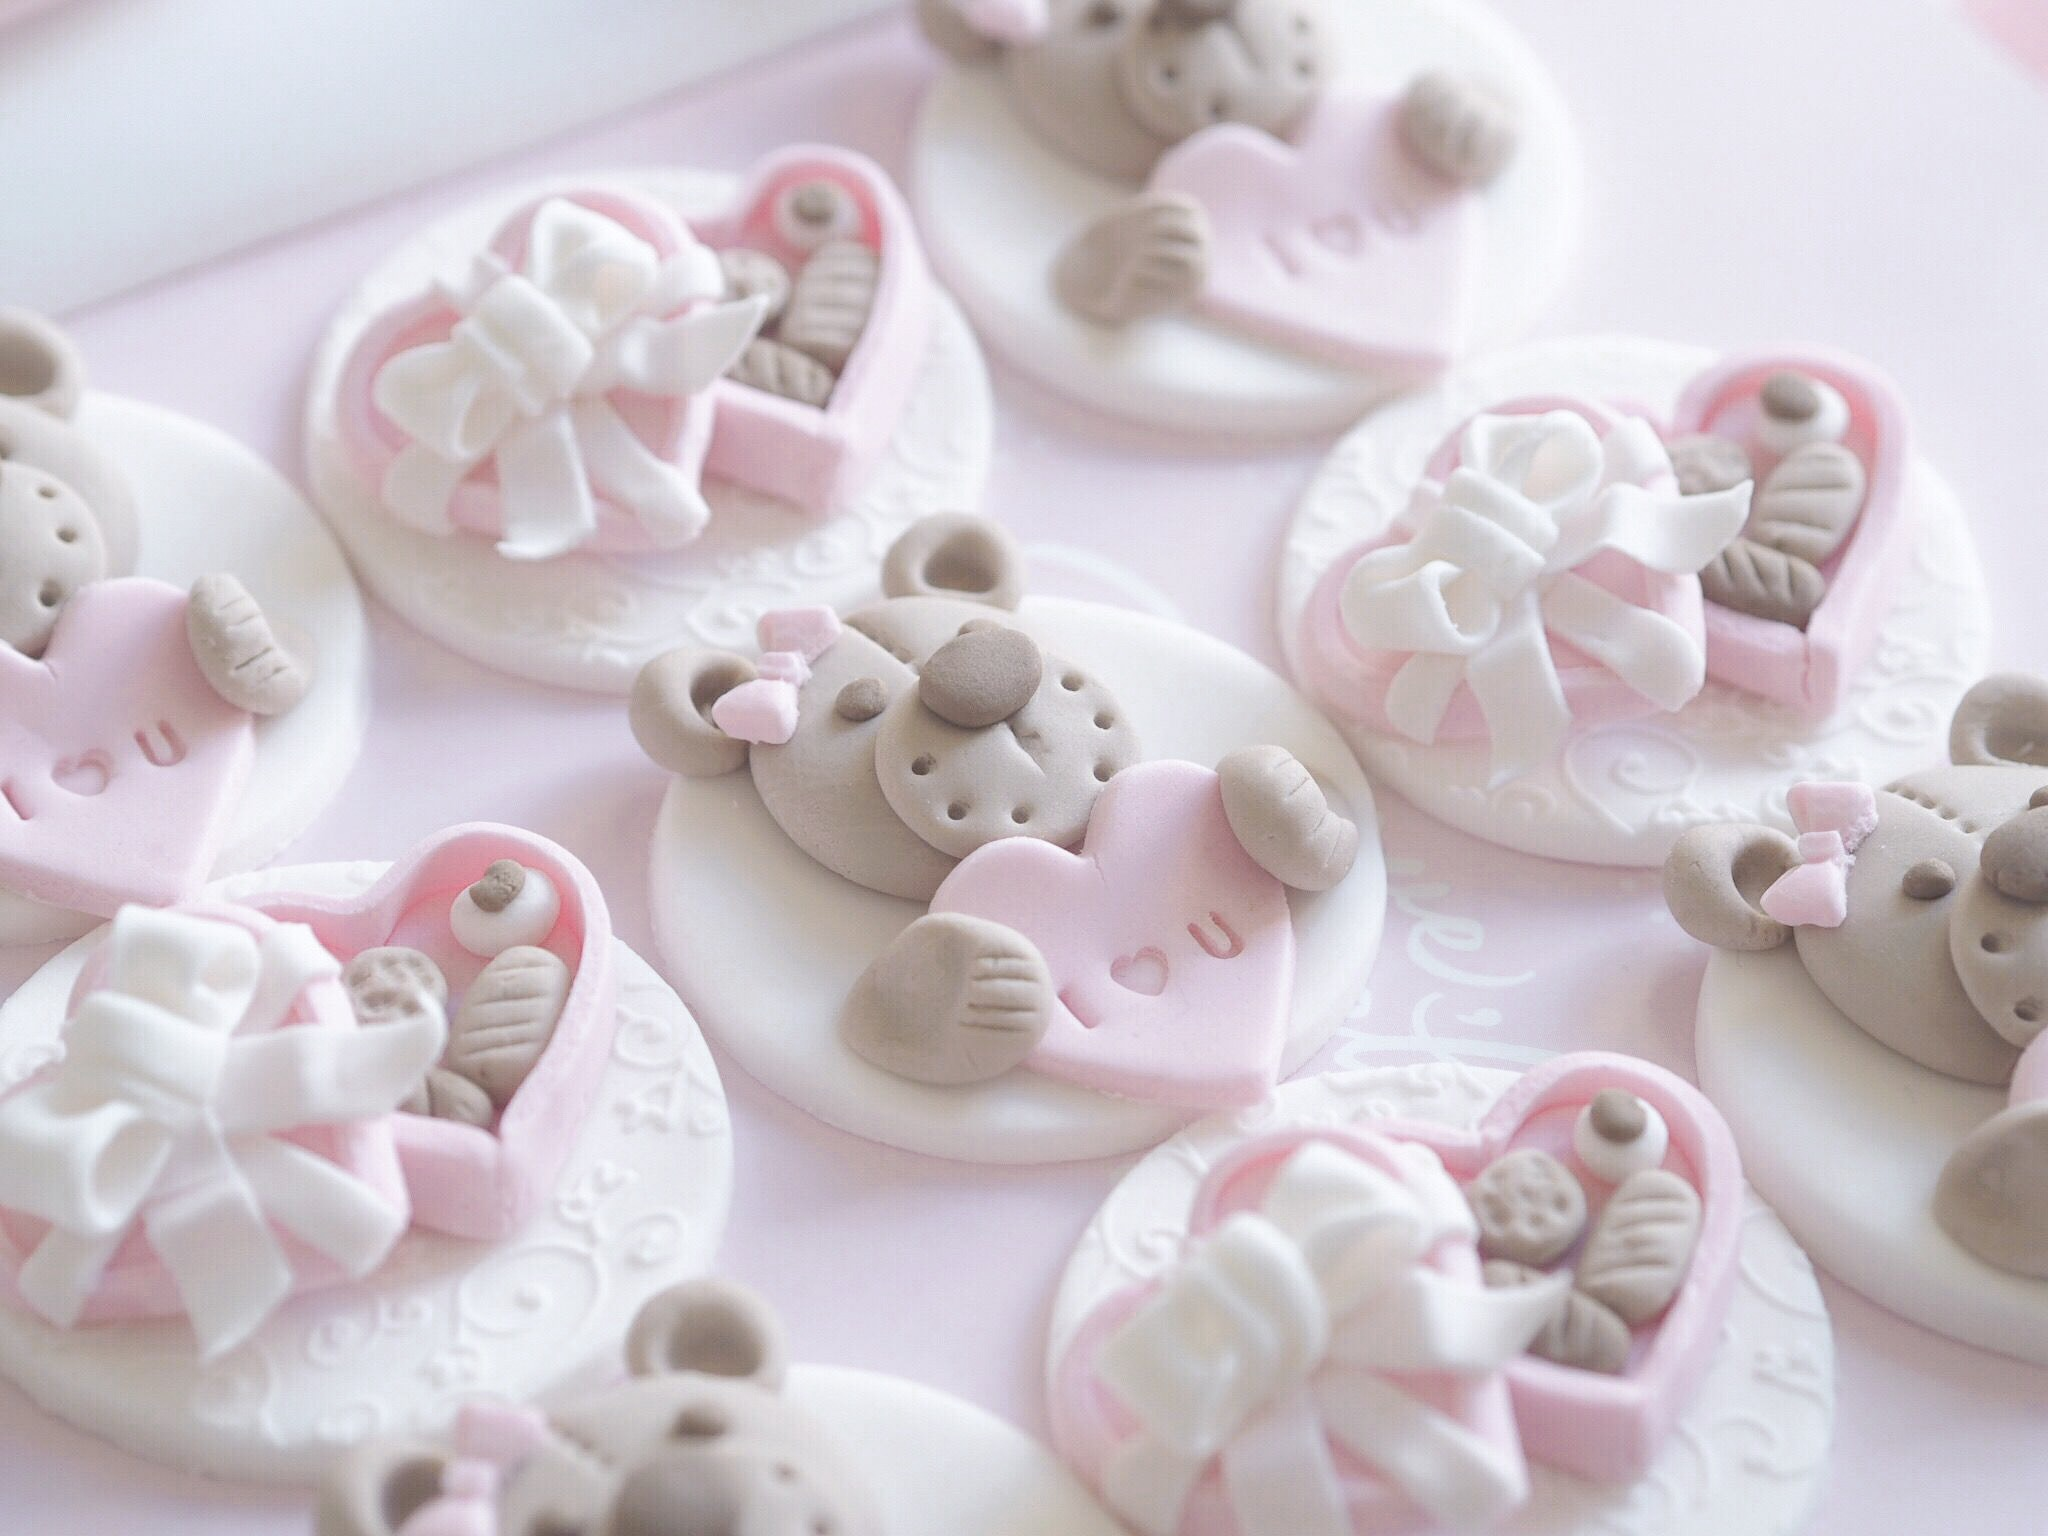 8 Sweet Ideas For Your Valentine's Baking ~ Teddy Bears & Chocolate Boxes